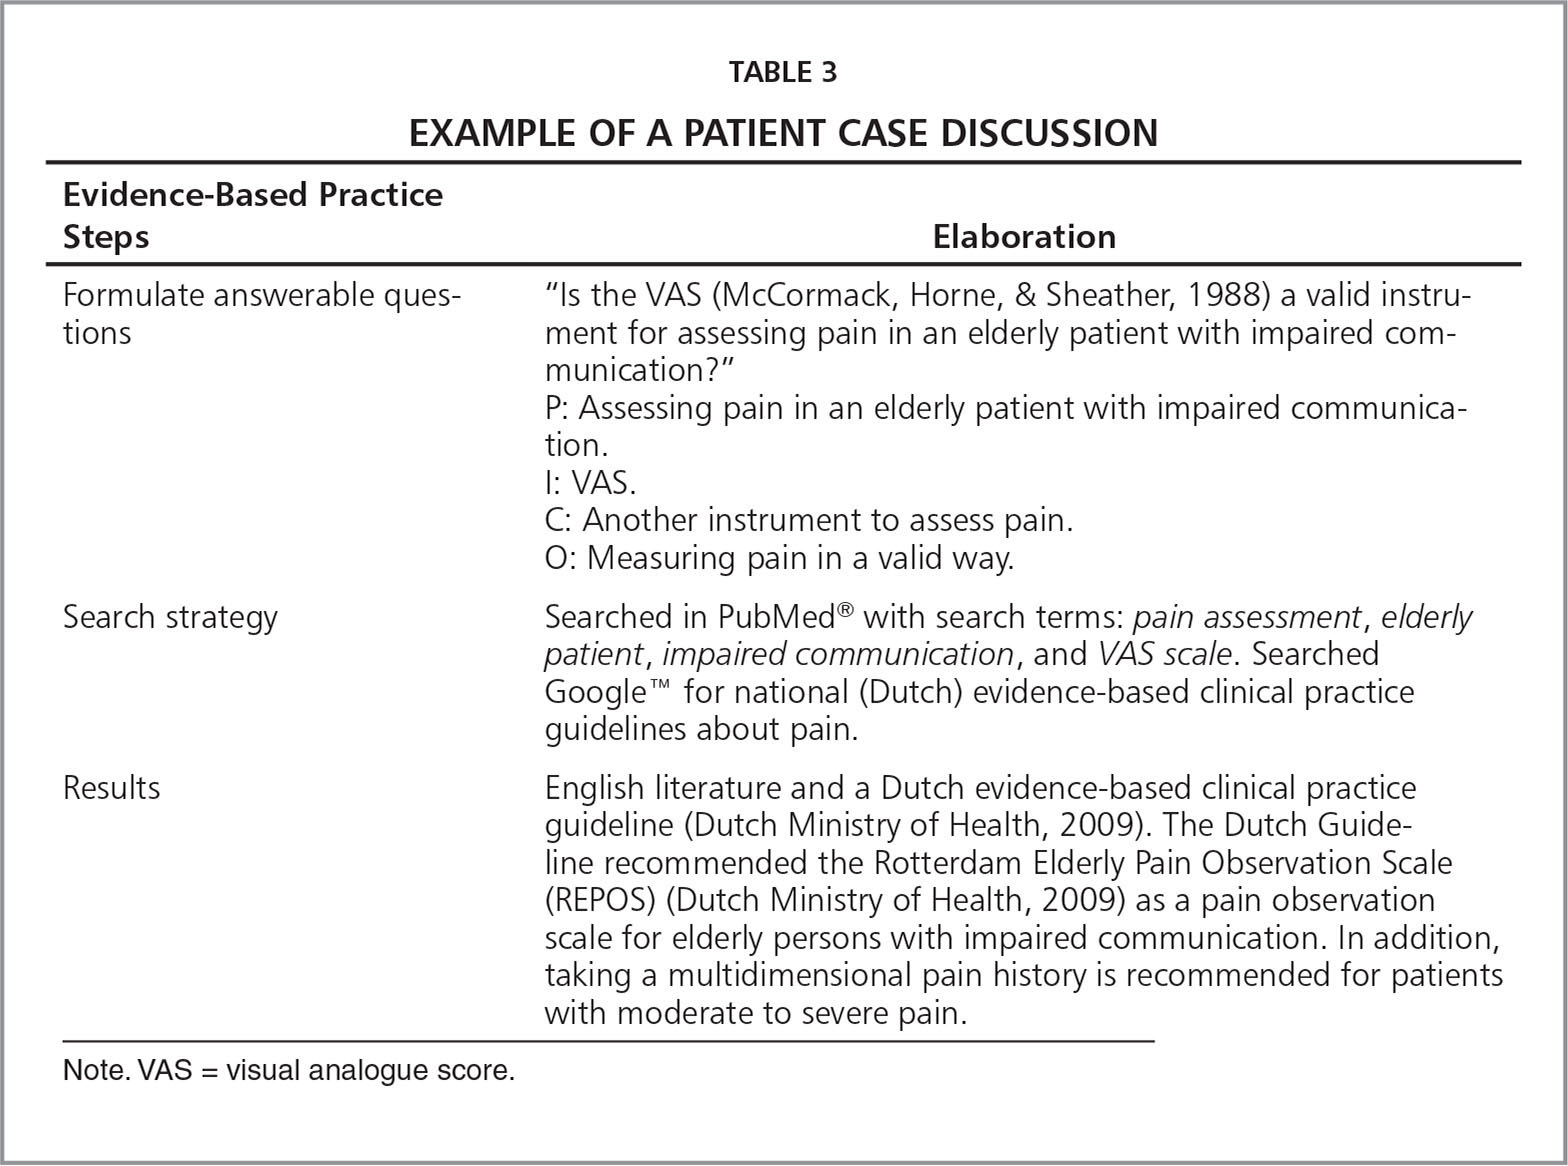 Example of a Patient Case Discussion